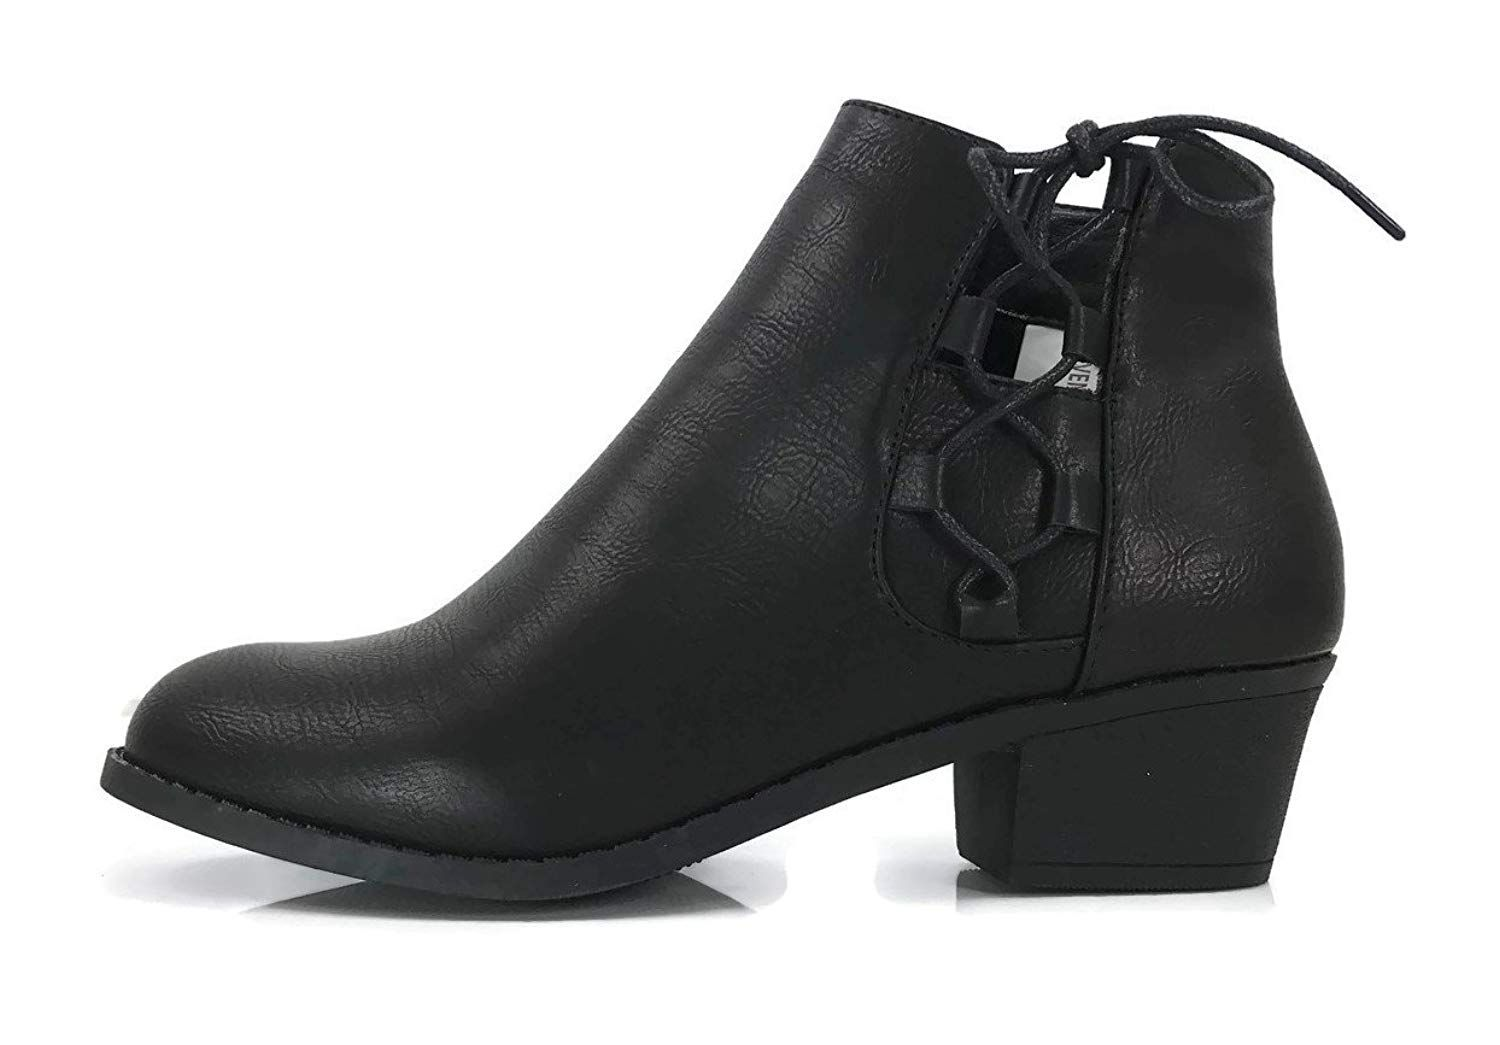 414f64503 Steven Ella Women s Holly Ankle Bootie Criss Cross Faux Leather Flat Heel  Zipper. These stylish booties made of quality faux suede leather have a  classy Amy ...